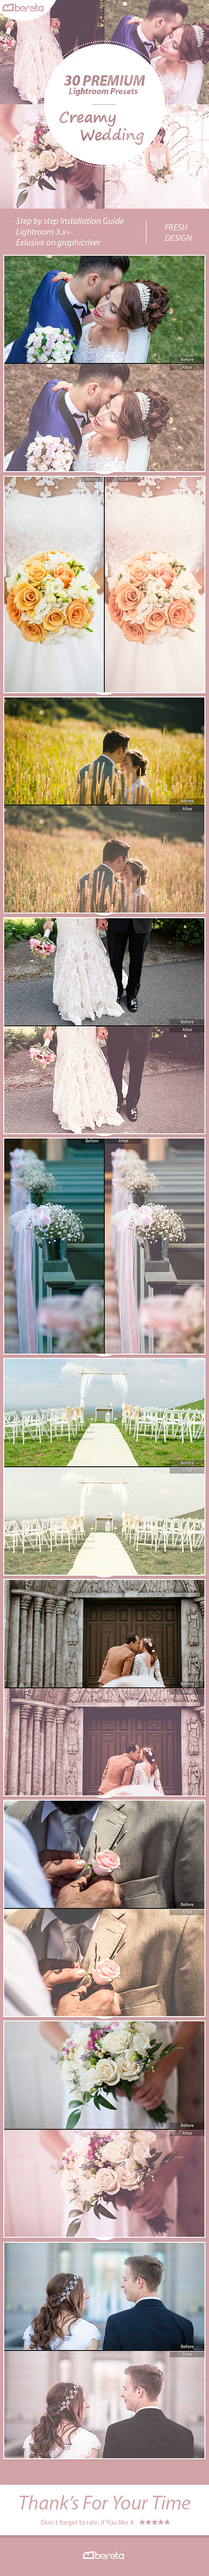 30 Premium Creamy Wedding Lightroom Presets - Wedding Lightroom Presets